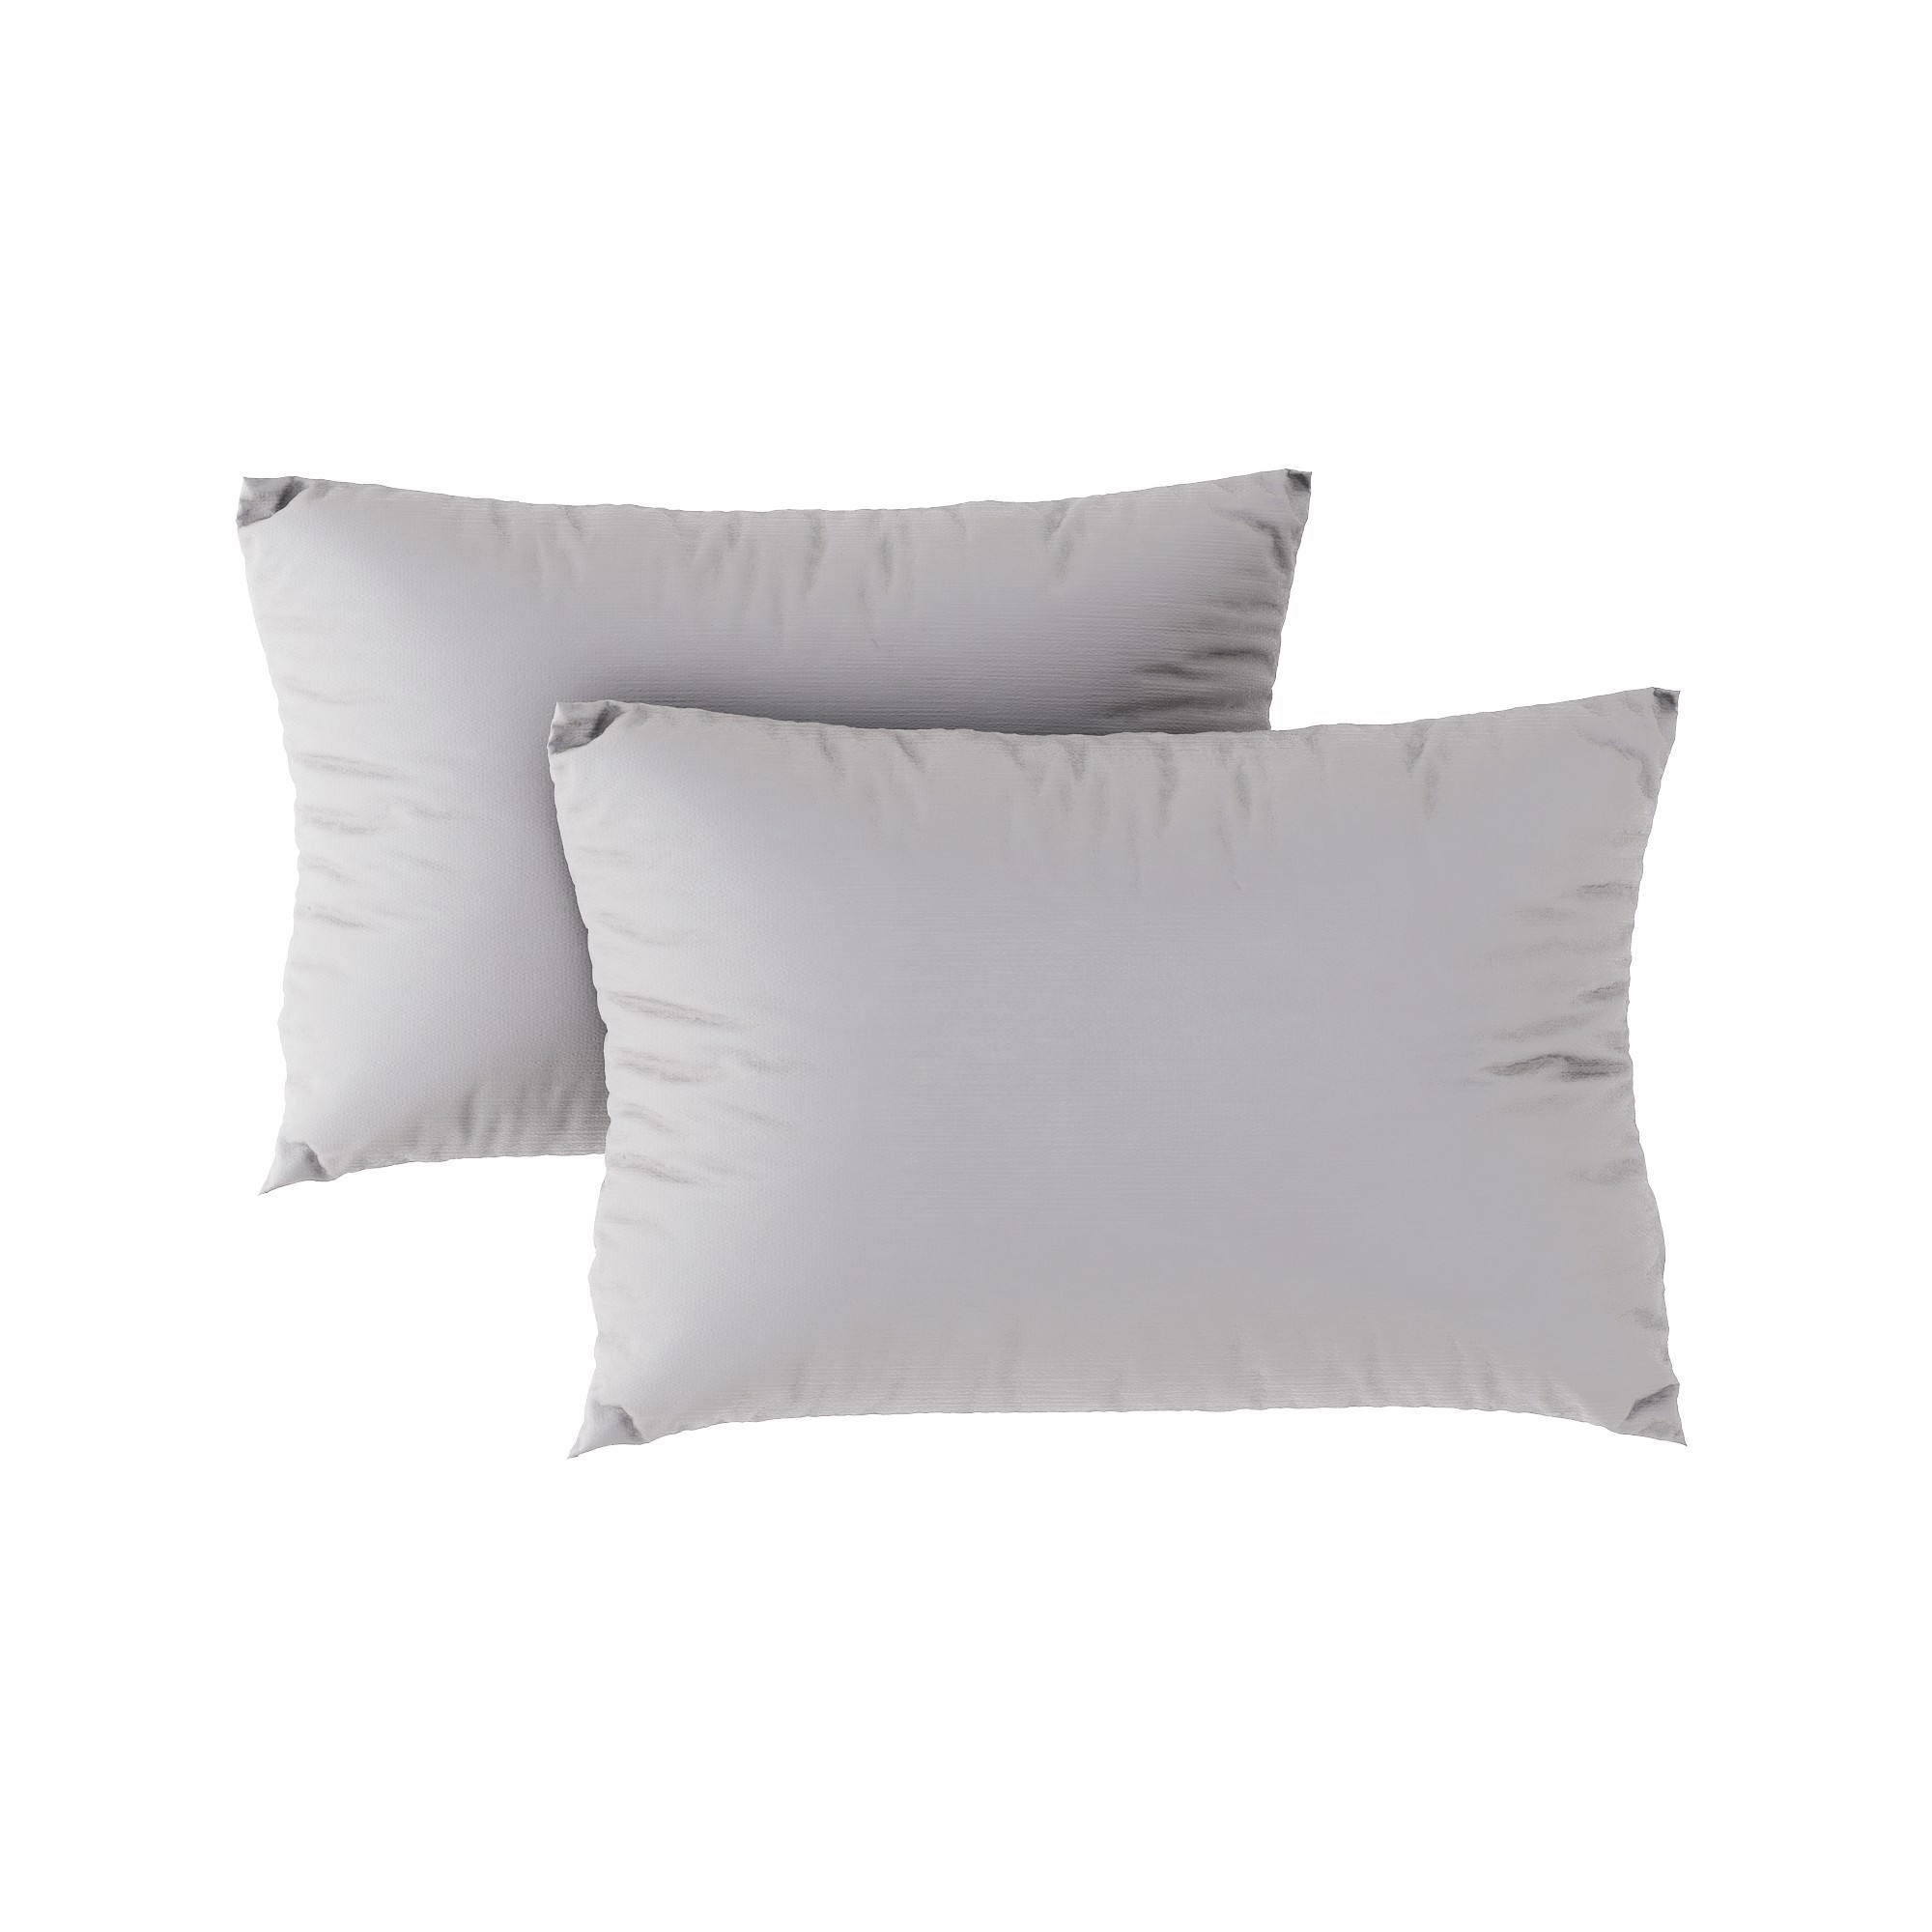 Premium pillow case 06 Grey (2pcs)